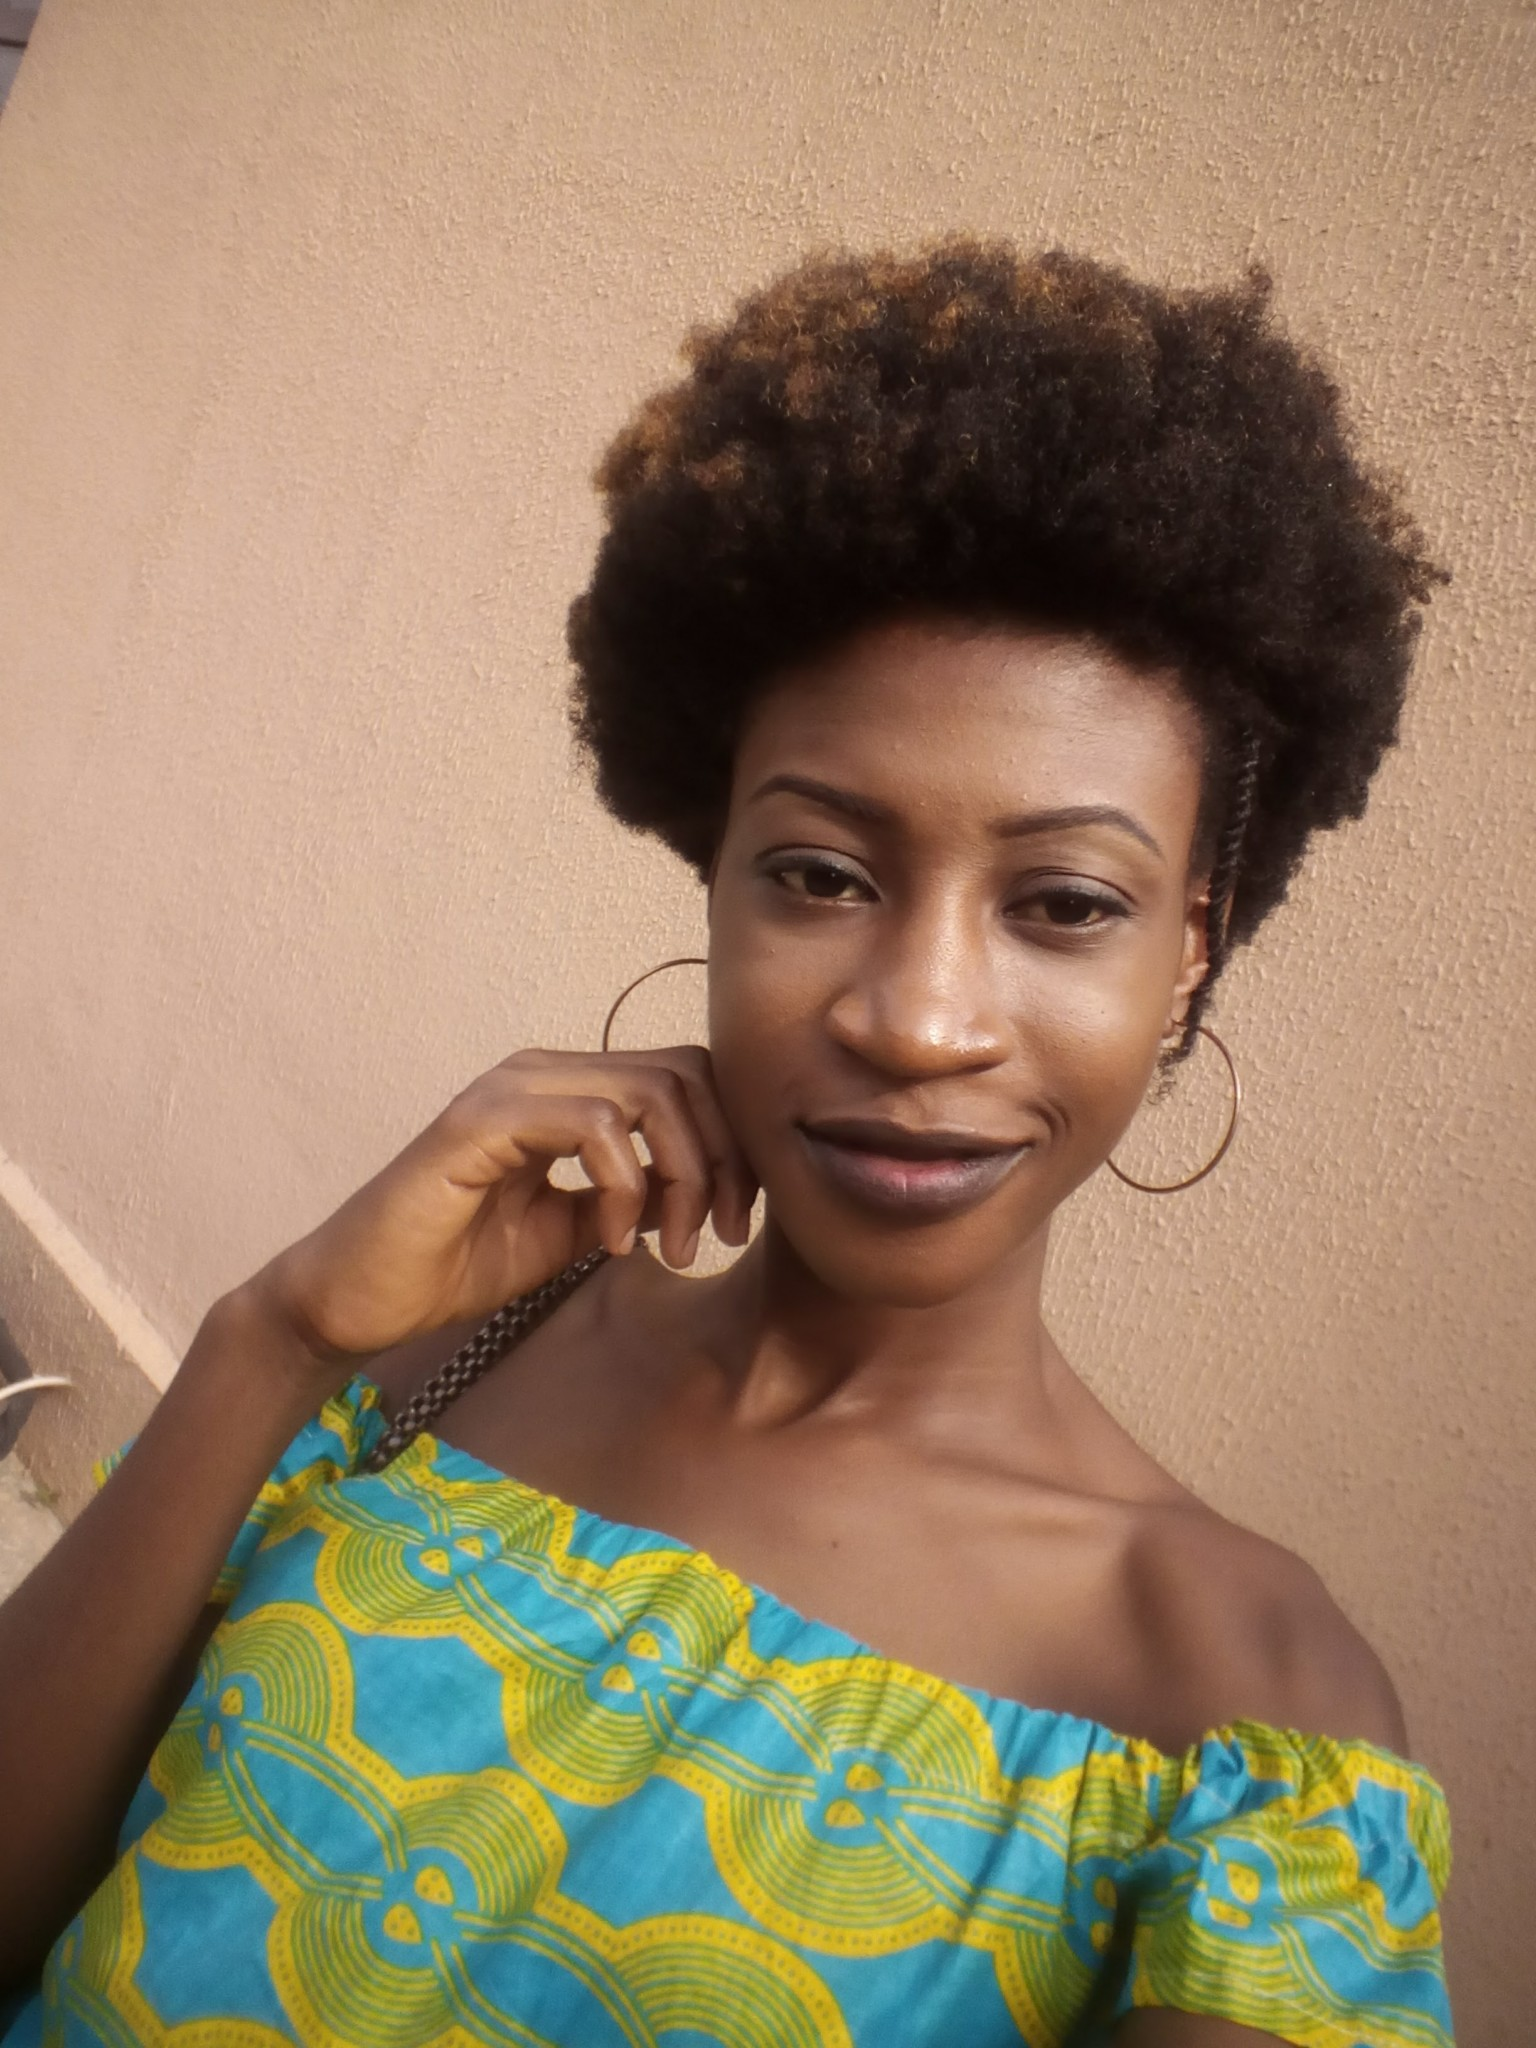 10 Natural Makeup Ideas For Everyday: #BNFroFriday: Chinny Francis Shares Natural Hair Journey